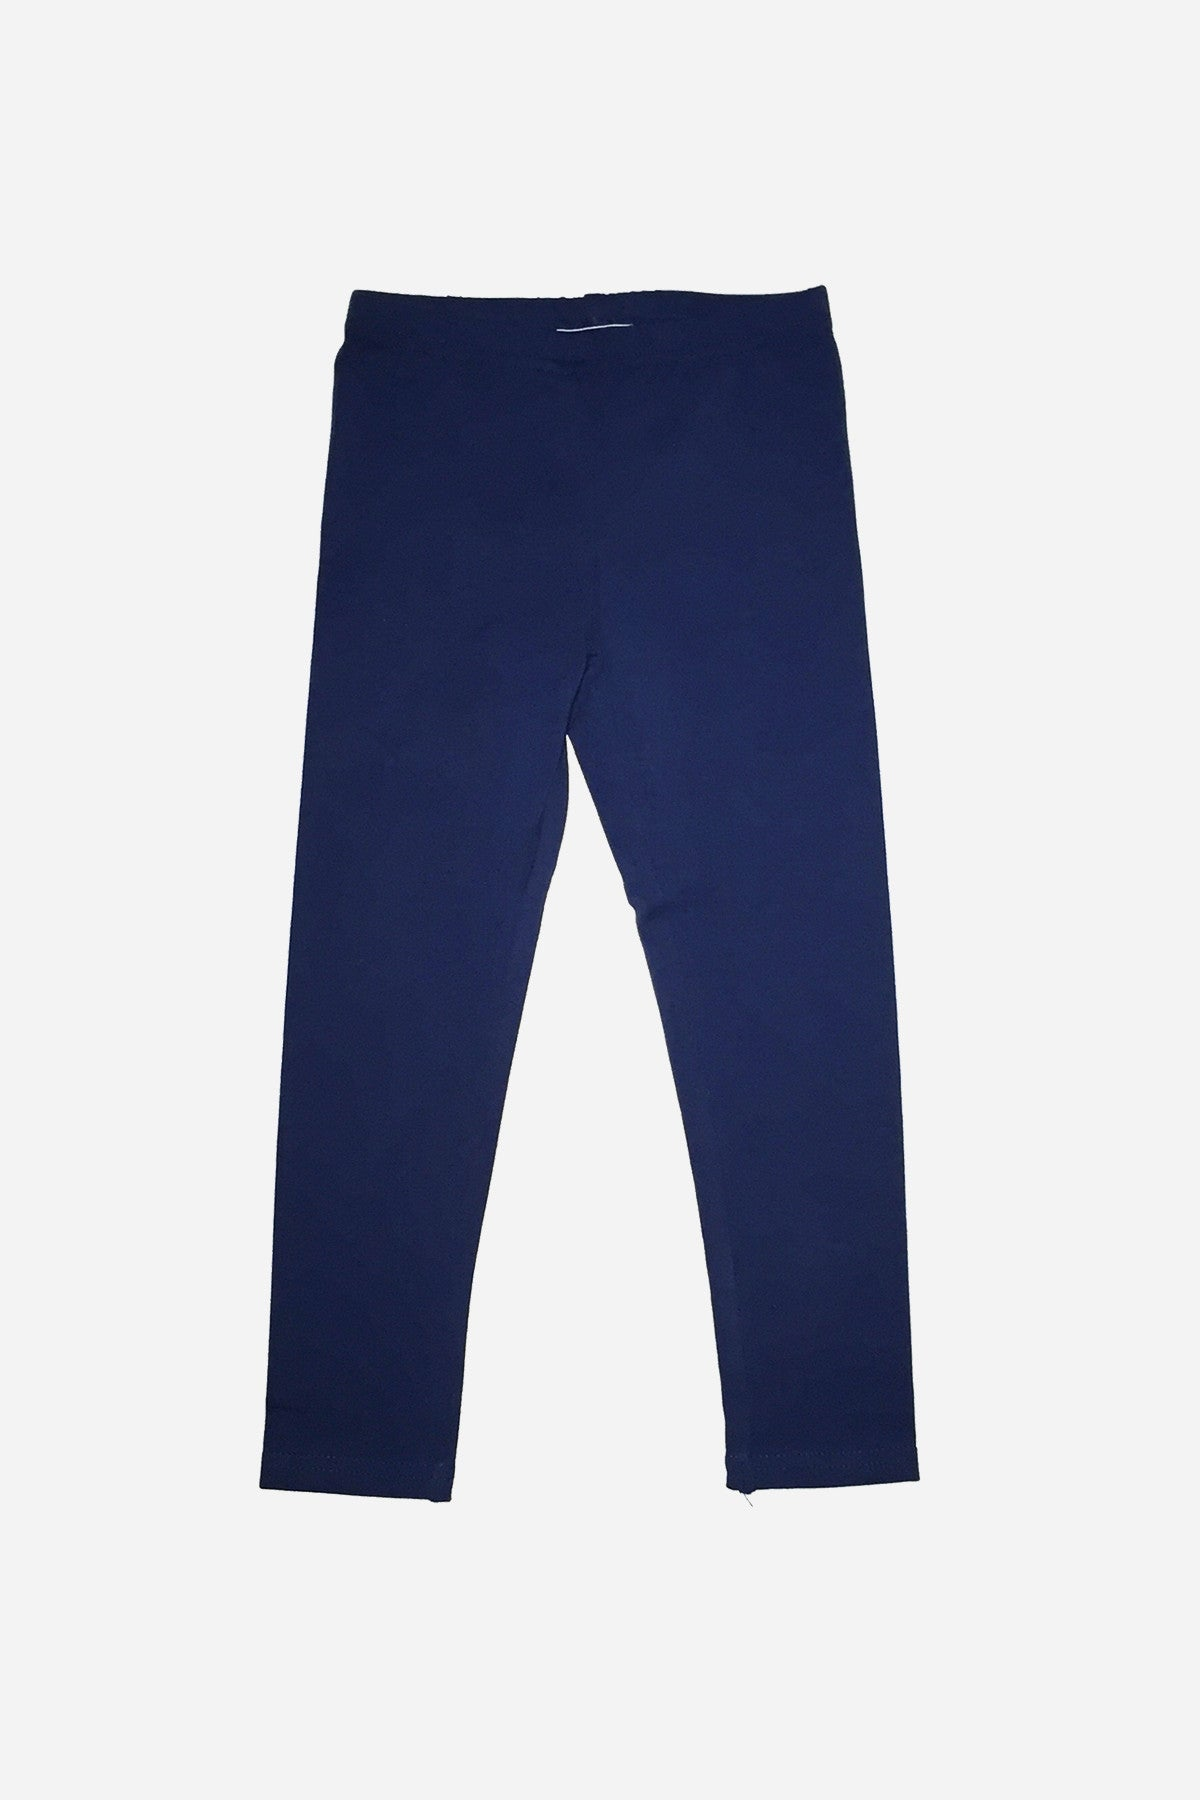 Toobydoo Navy Leggings